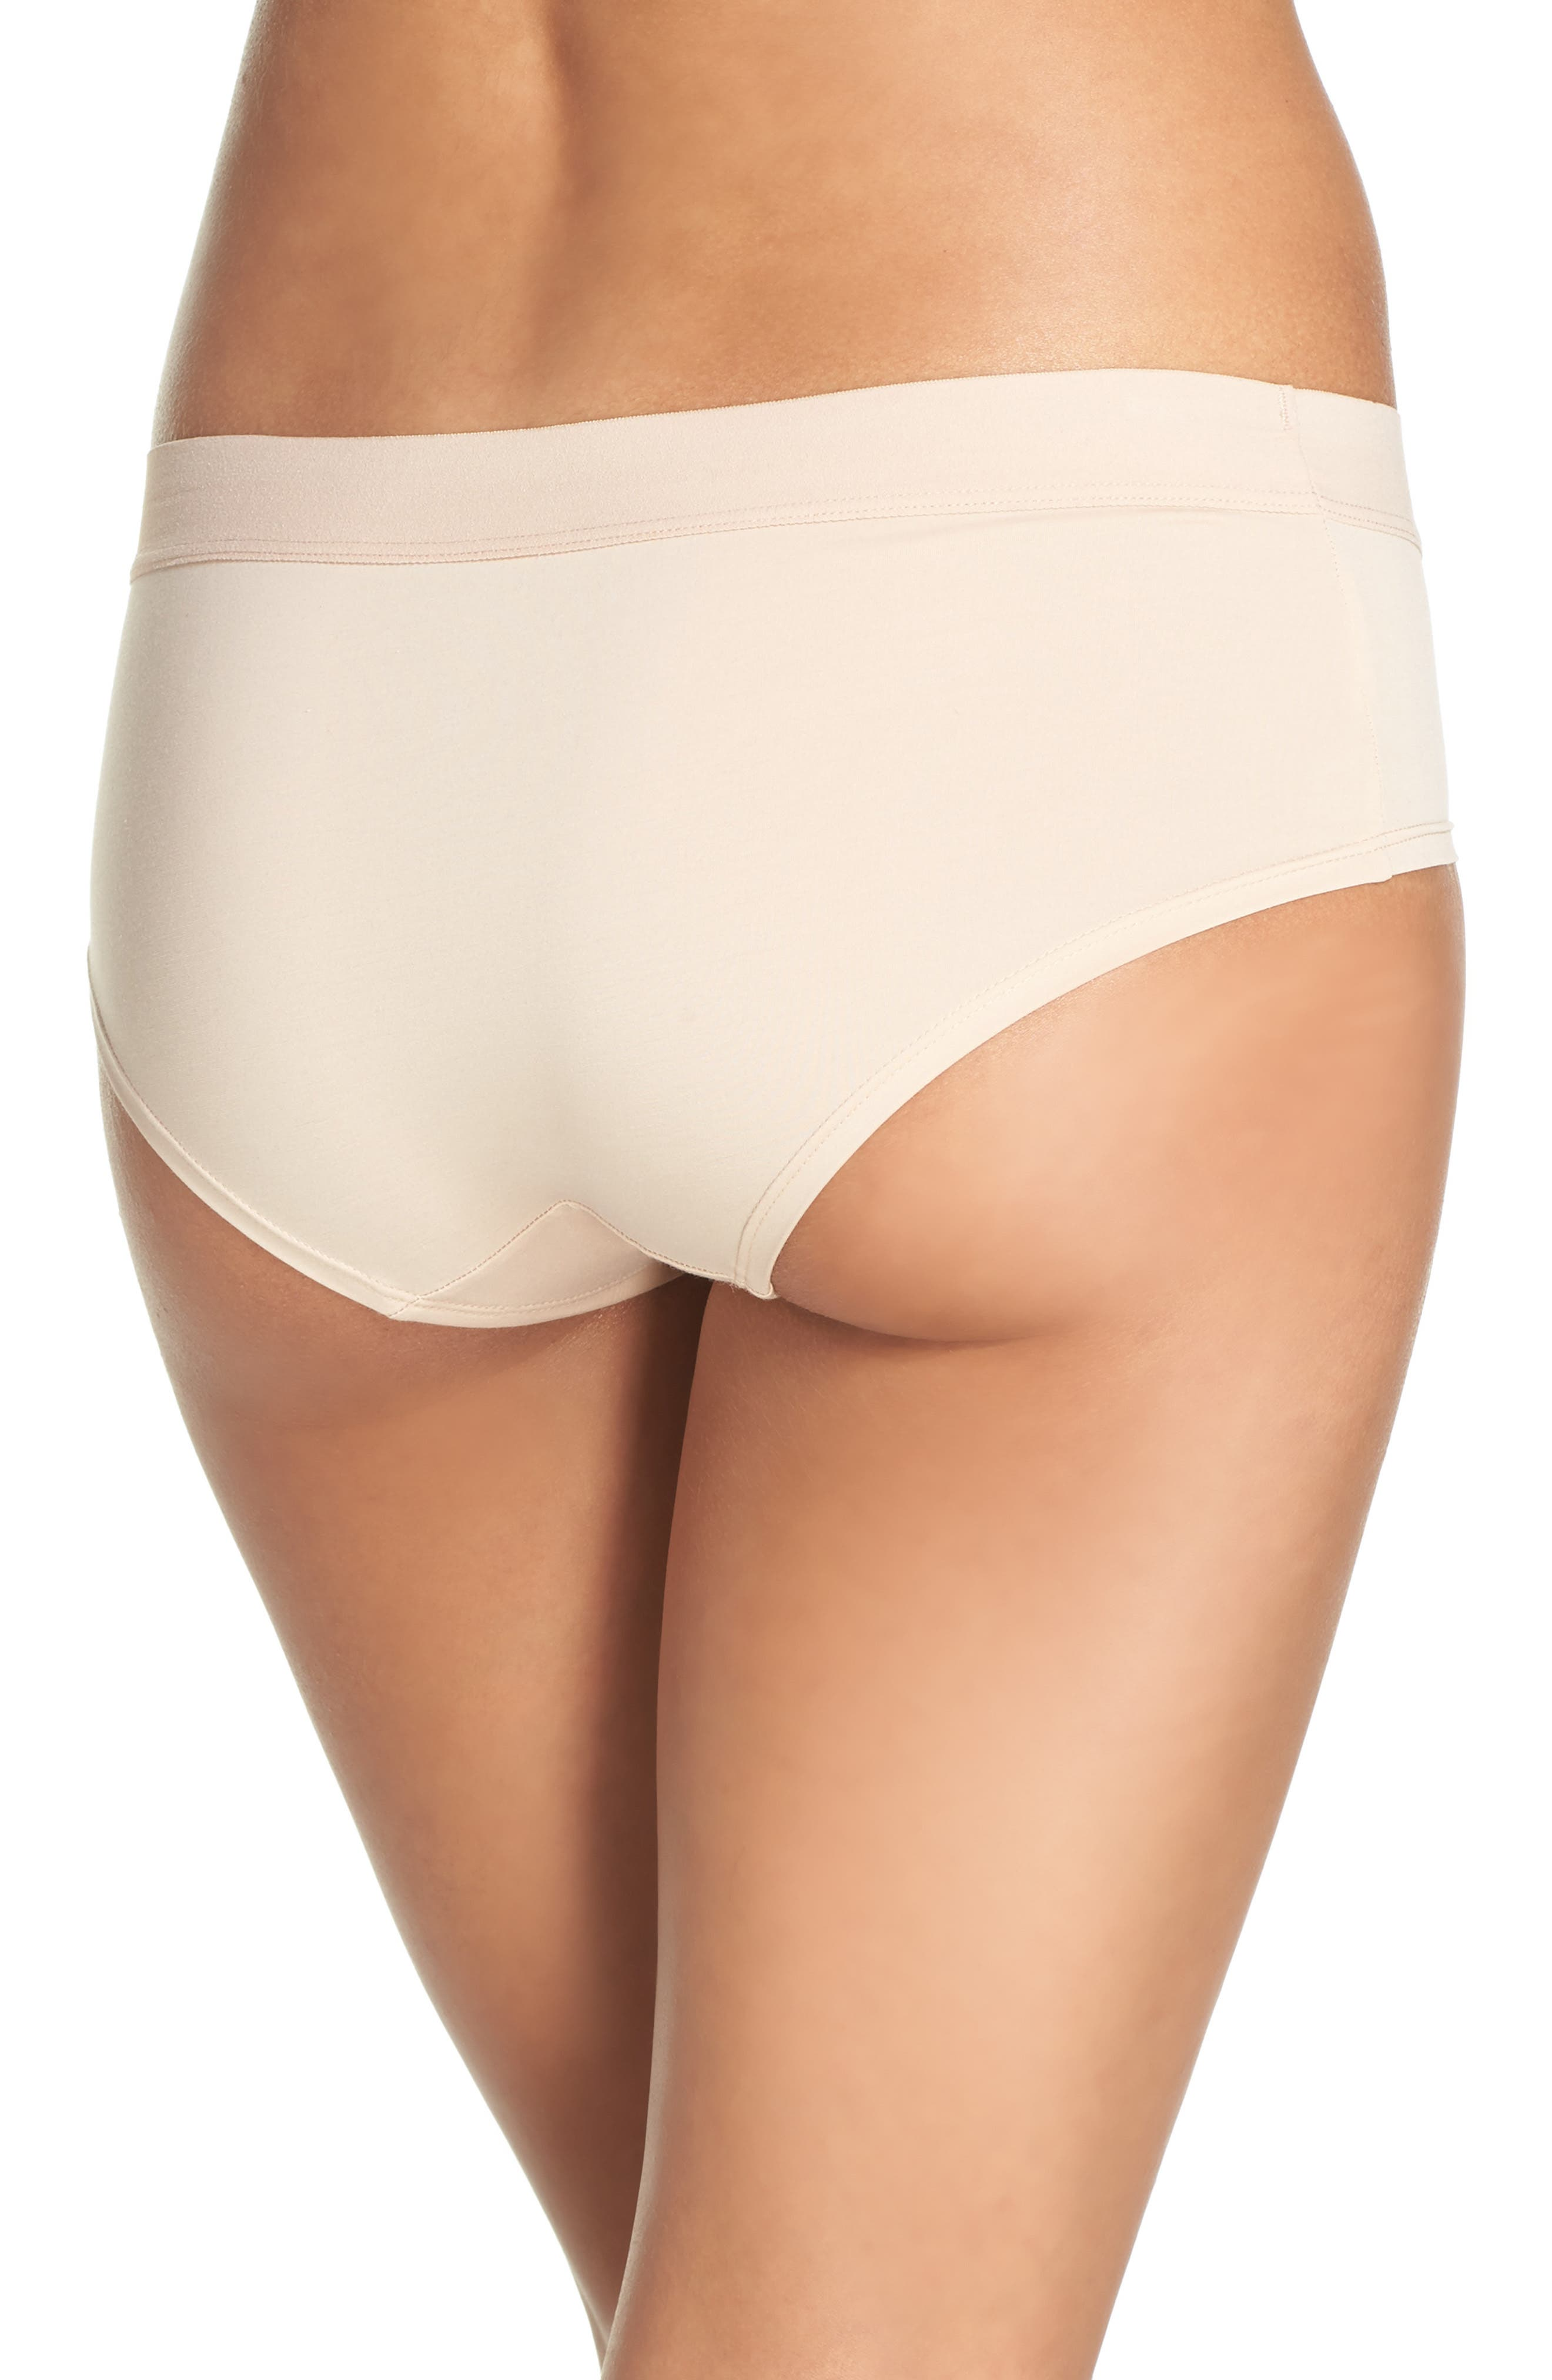 Alternate Image 2  - DKNY Hipster Panties (3 for $33)